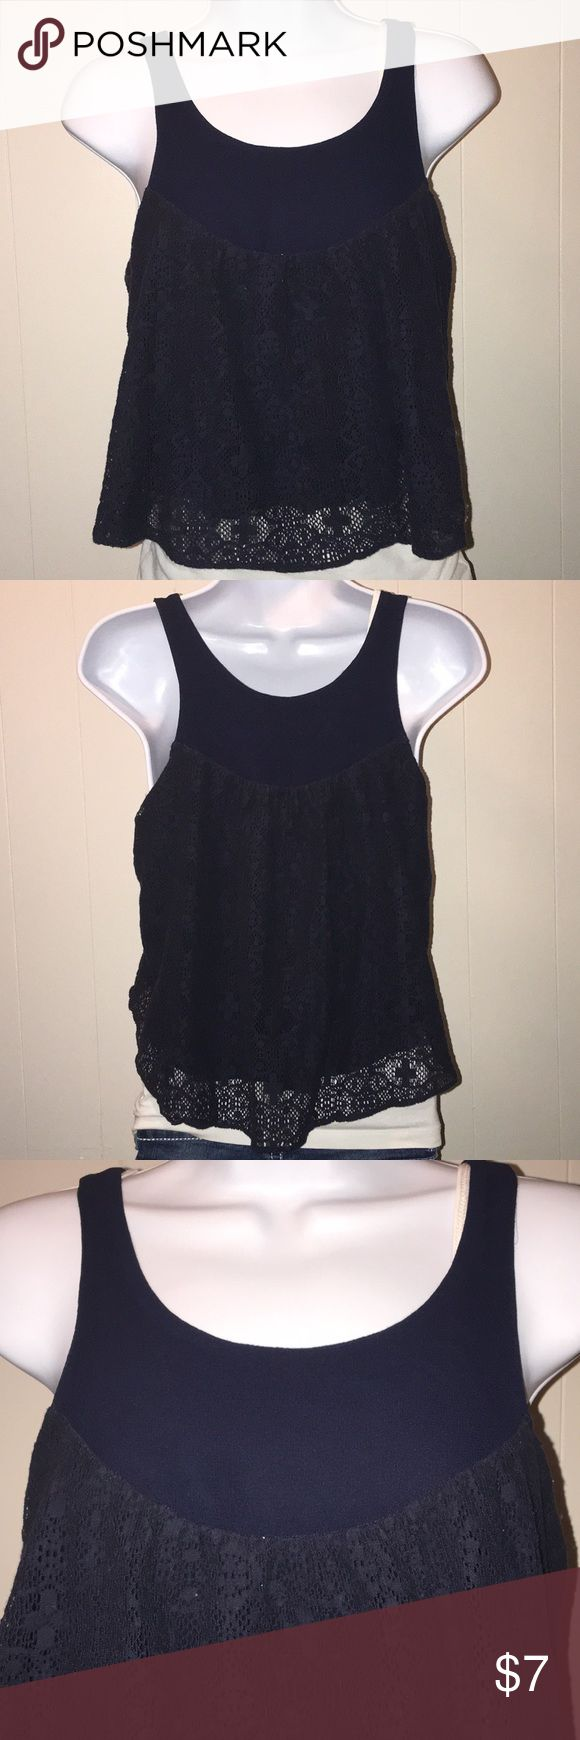 Juniors Abercrombie and Fitch Crop Tank Juniors Abercrombie and Fitch Crop Tank size Small Abercrombie & Fitch Tops Tank Tops